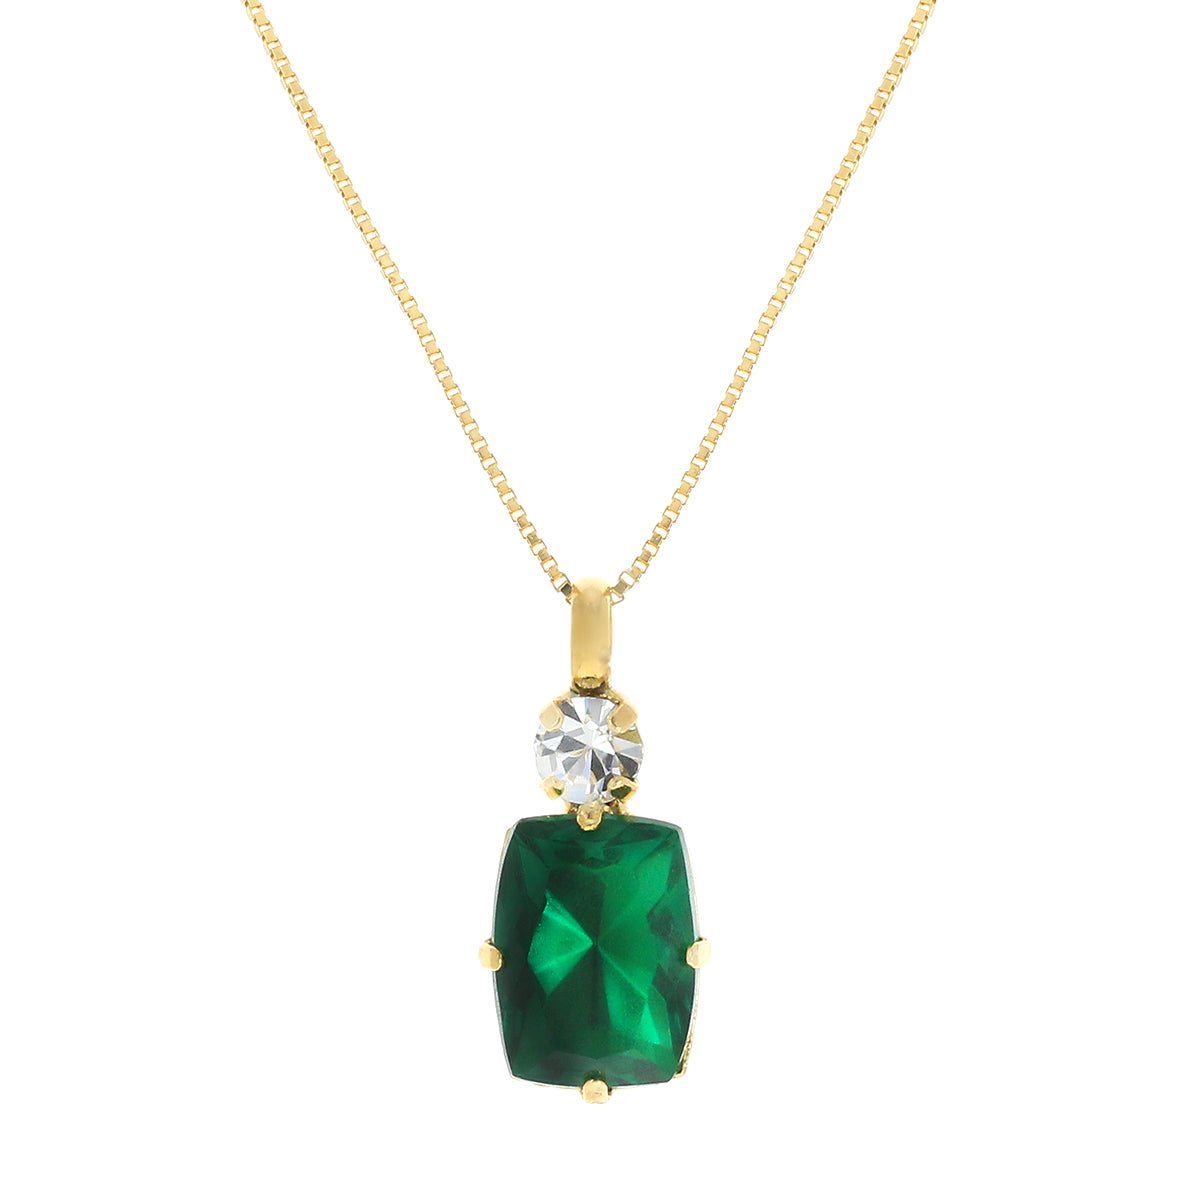 Valentina Square Cut Emerald Necklace.